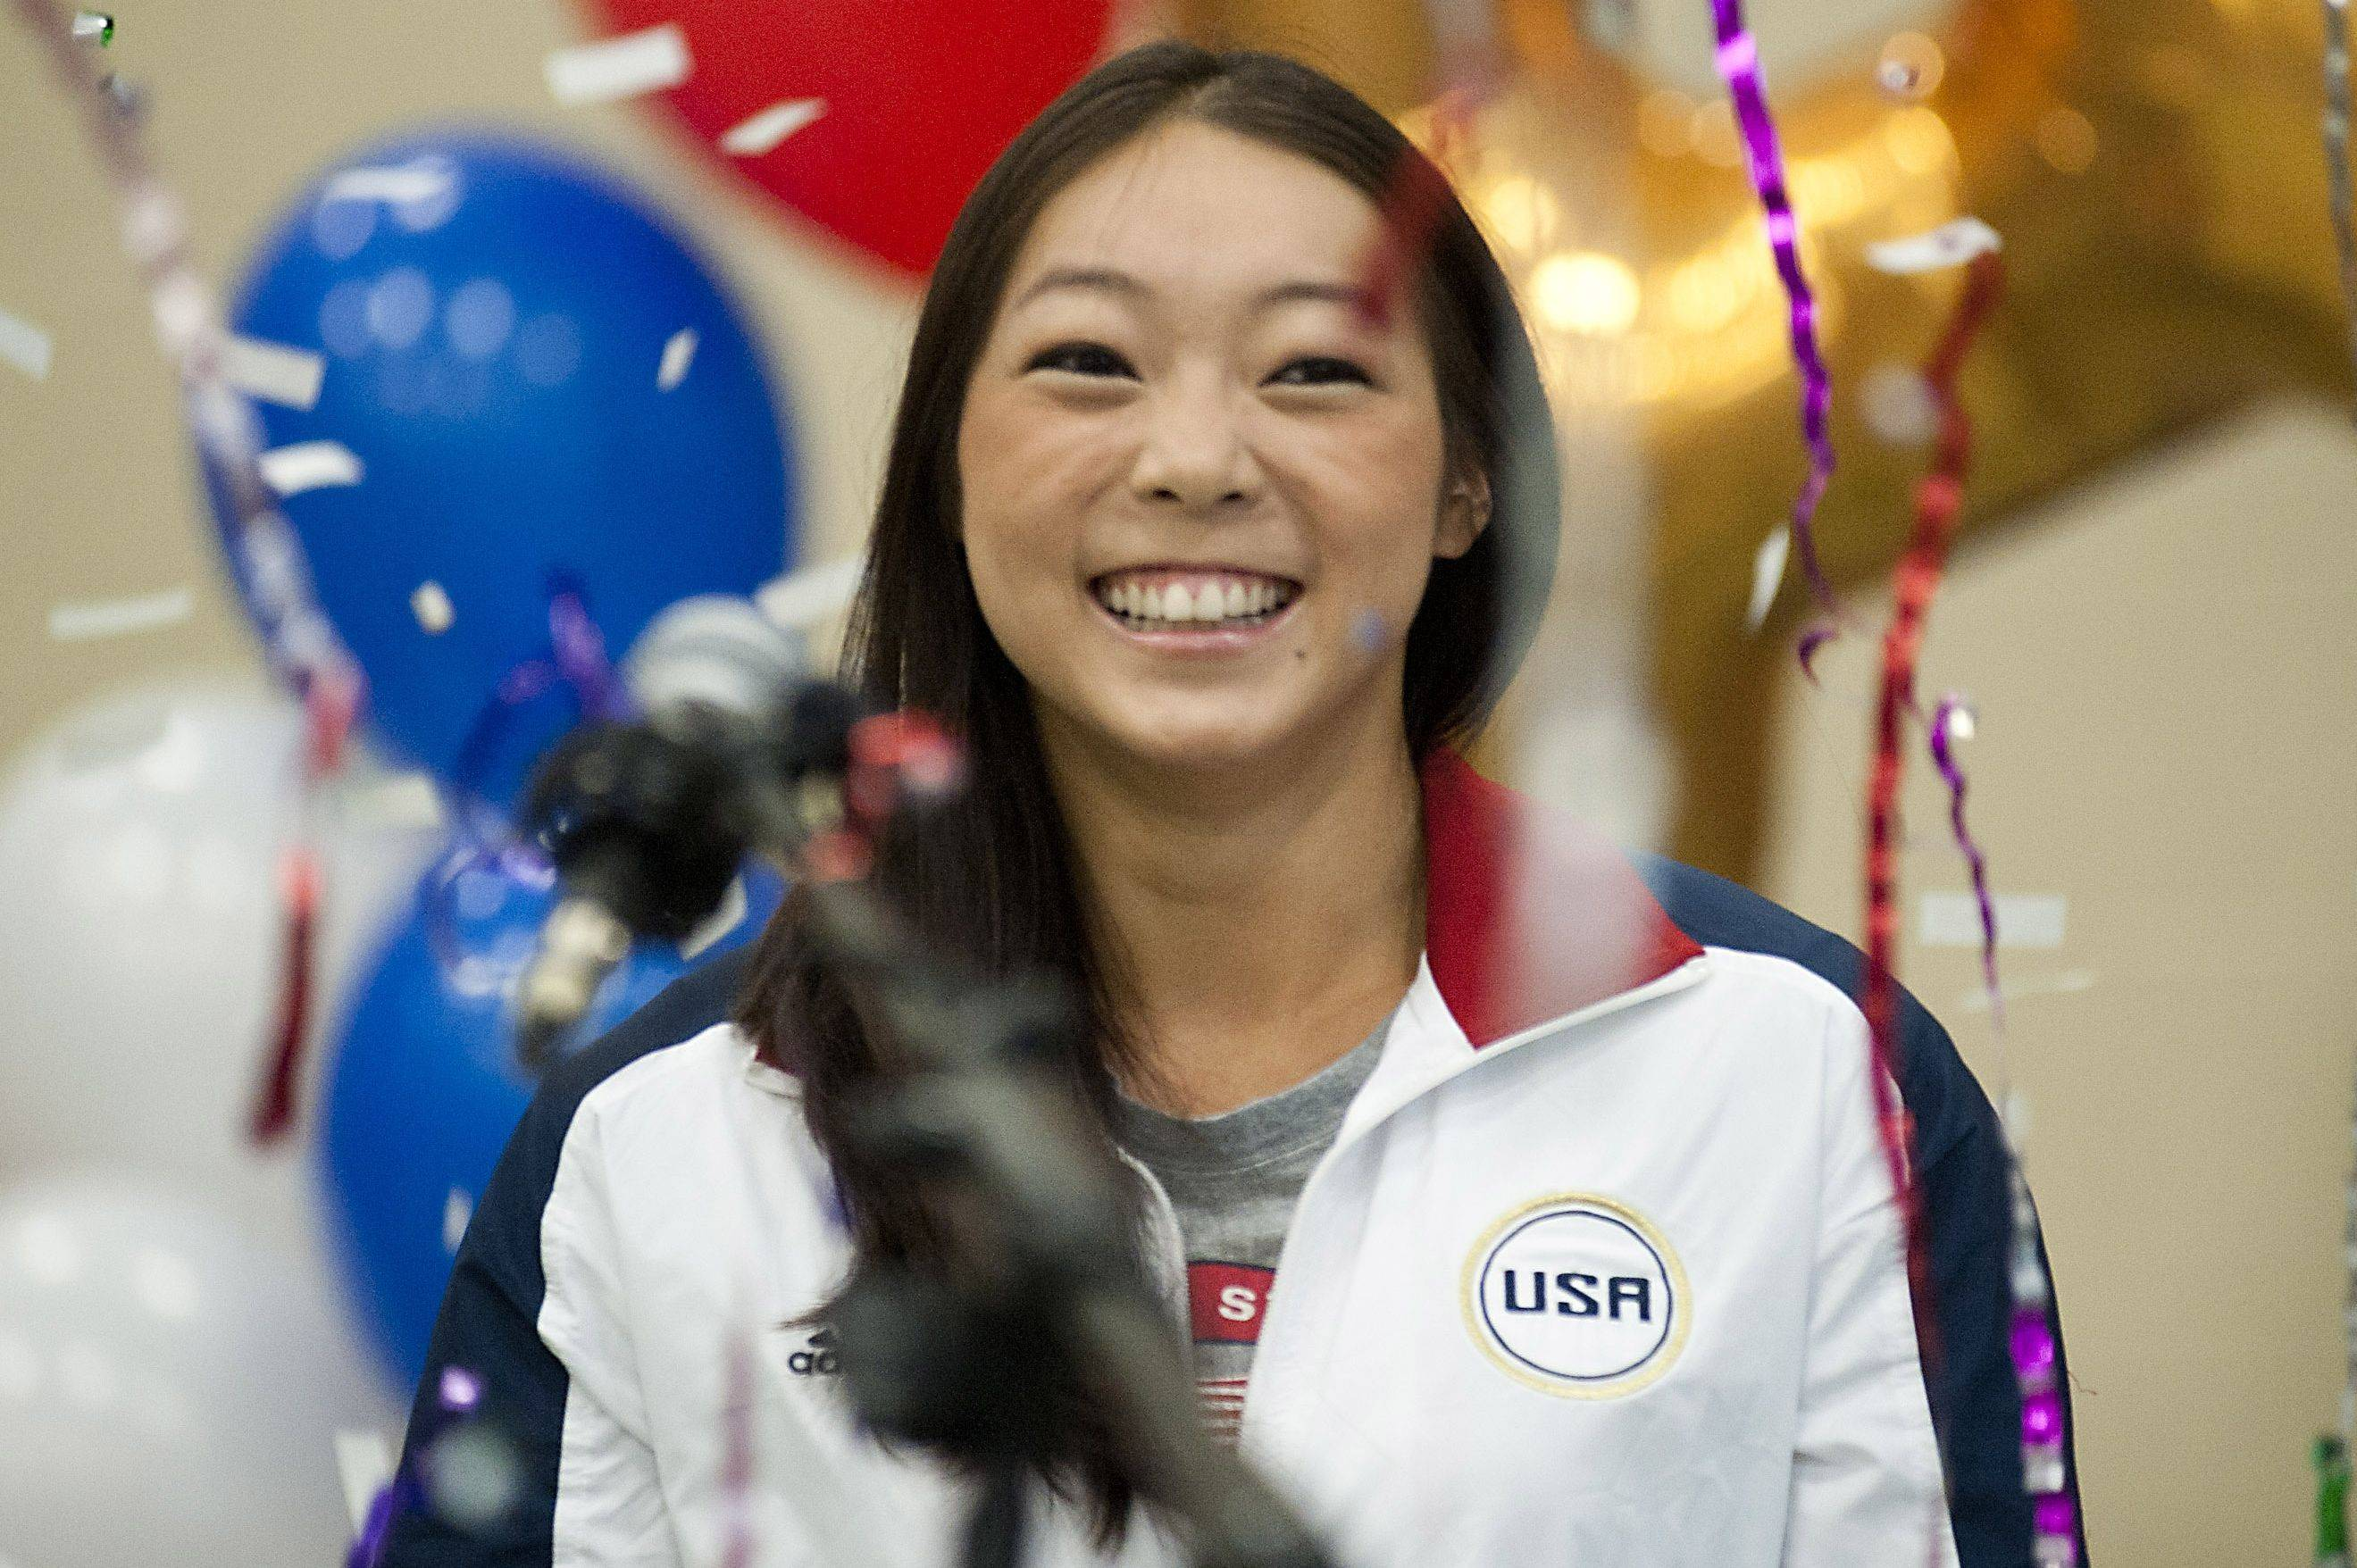 Aurora native Anna Li was chosen as an alternate for the U.S. women's gymnastics team for the 2012 Olympics. She suffered a severe neck injury on July 24, but was able to stay overseas to watch the U.S. capture the team gold medal.